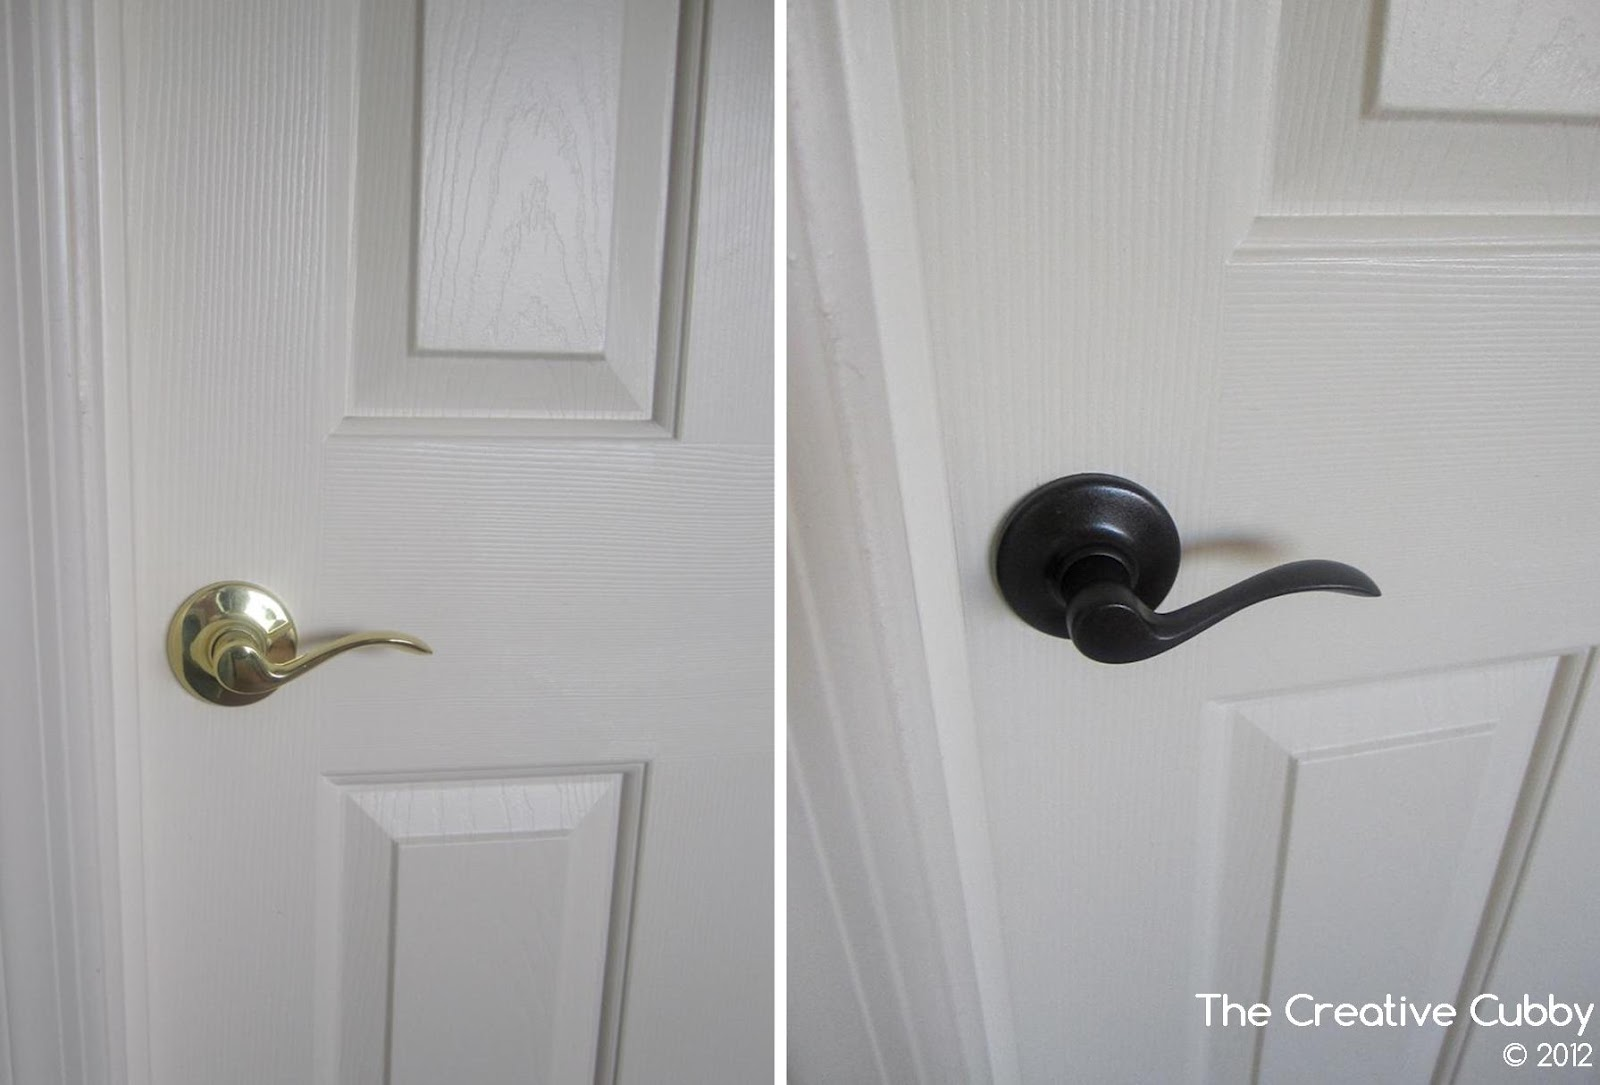 The Creative Cubby: DIY Door Handle Upgrade